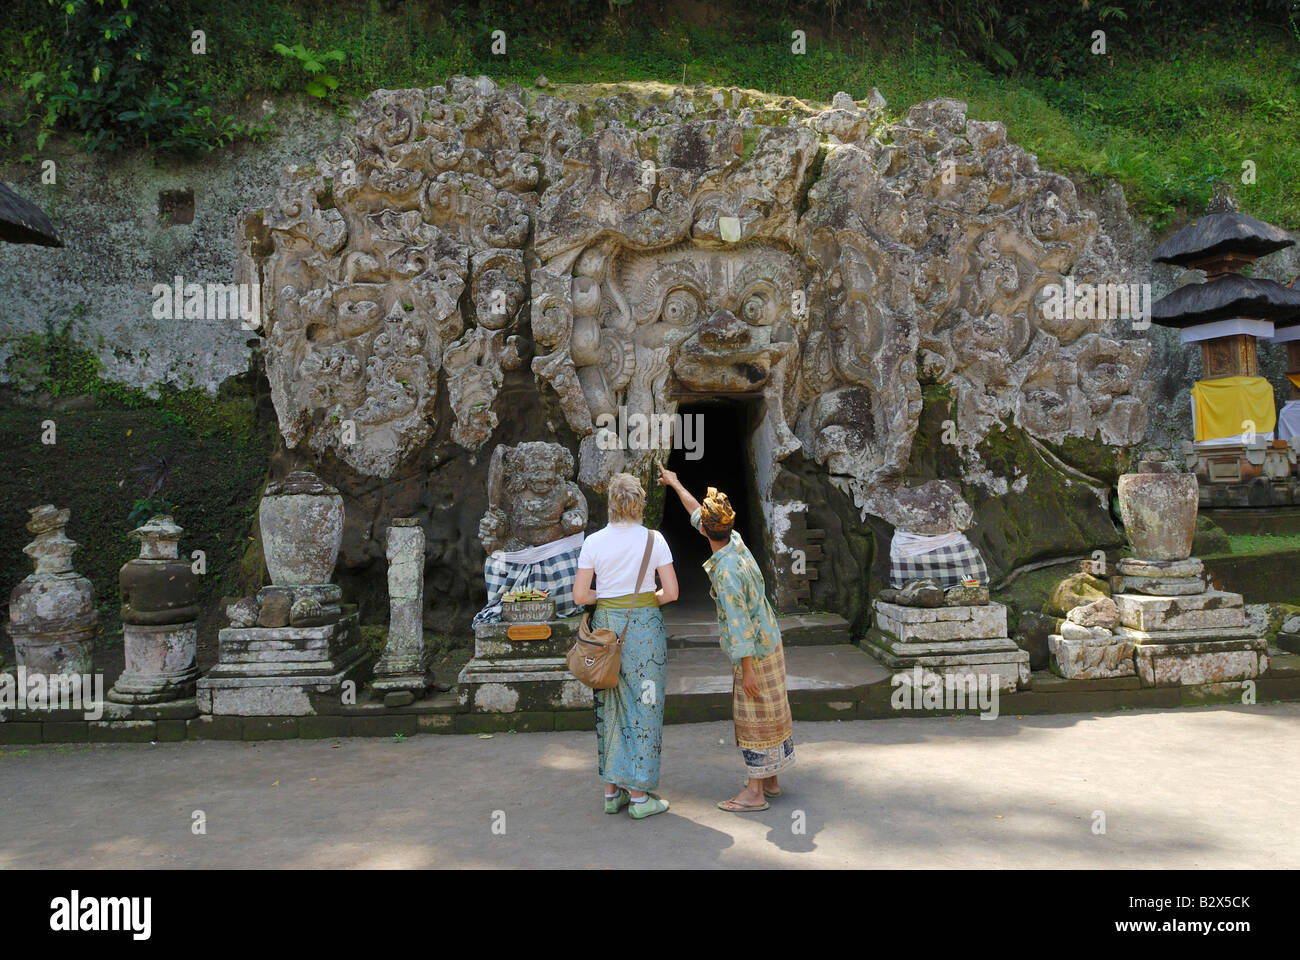 ELEPHANT CAVE, Goa Gajah, tourists in front, Bali, Indonesia, Asia - Stock Image